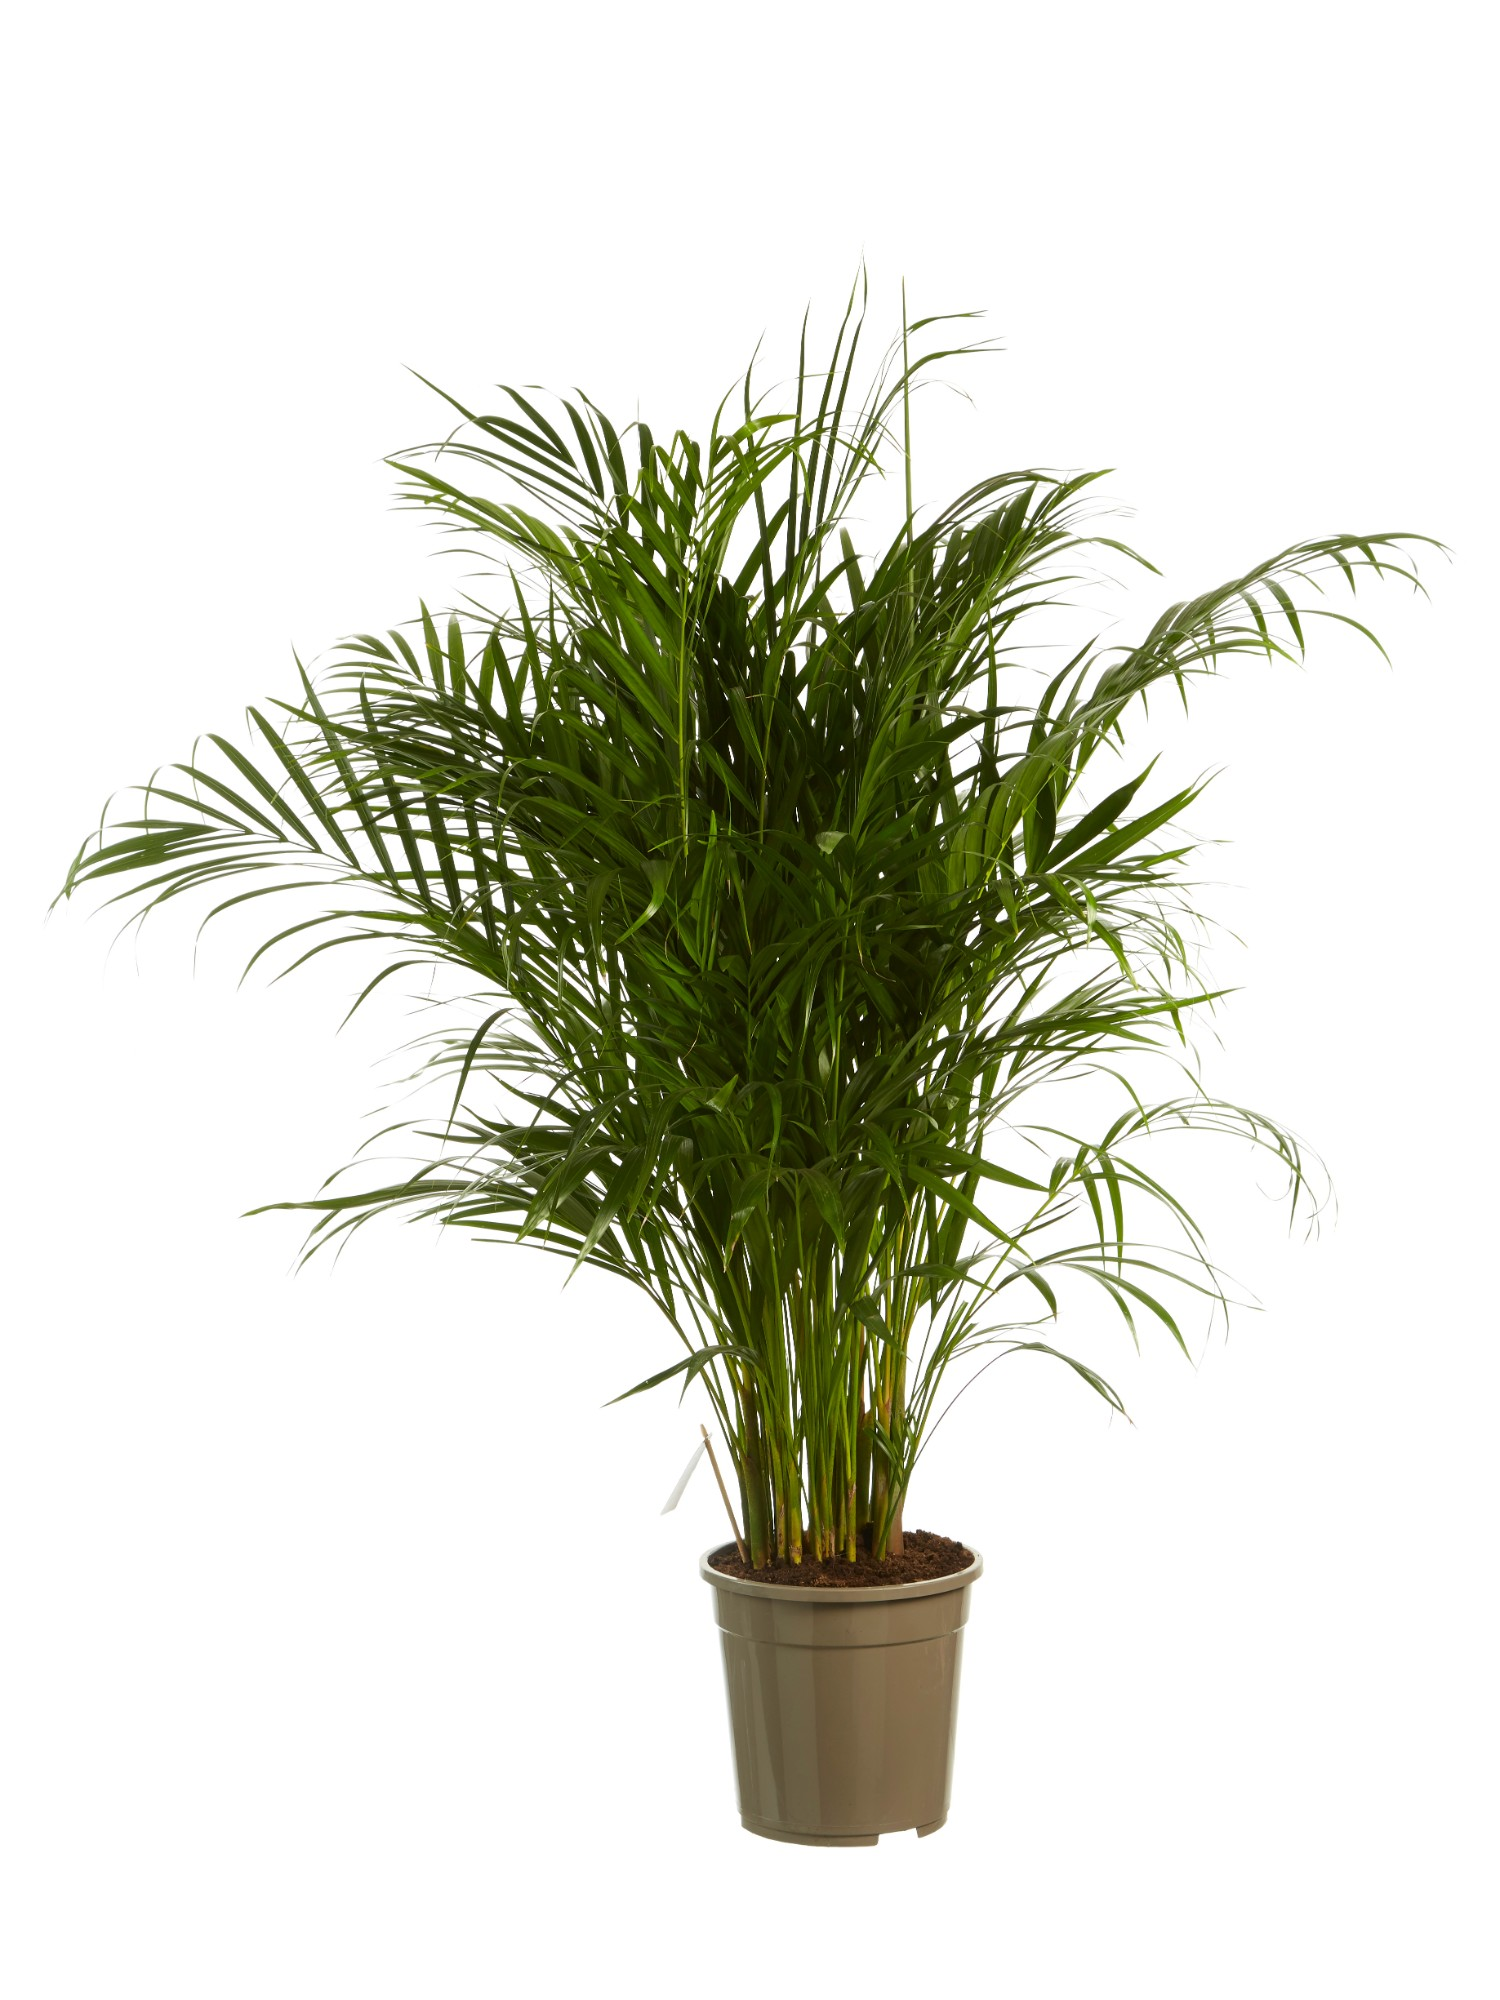 BOTANICLY  Zimmerpflanze  Goldfruchtpalme  Hhe 120 cm